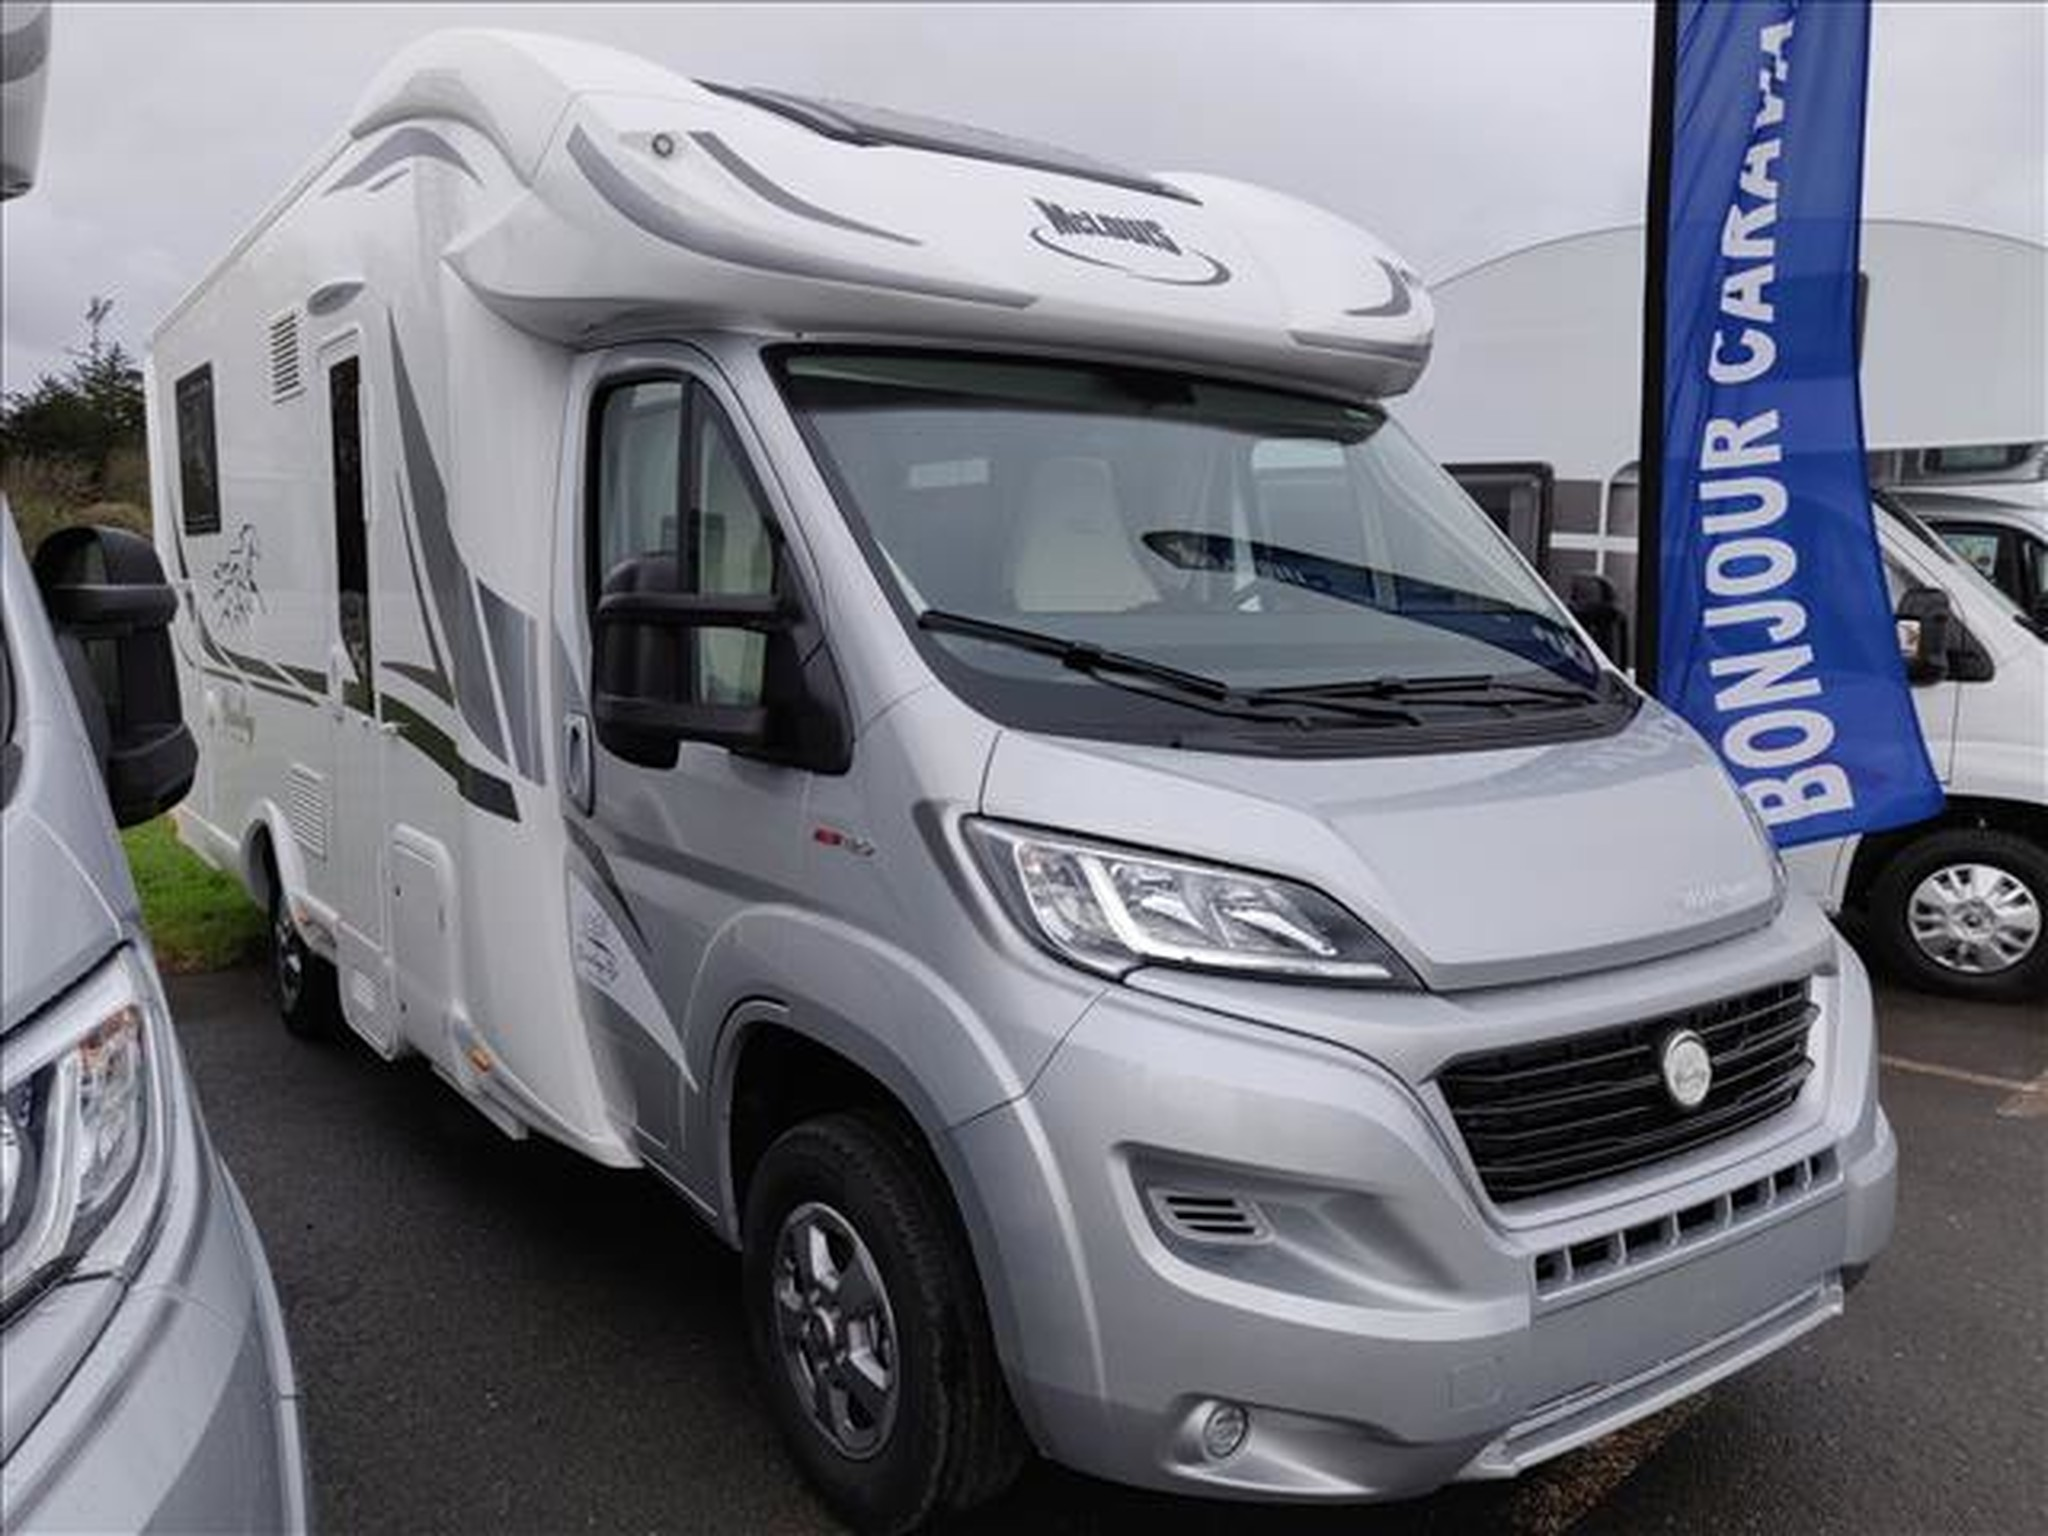 Camping-car MCLOUIS YEARLING 72 FIAT DUCATO 2.3 Mjet 130